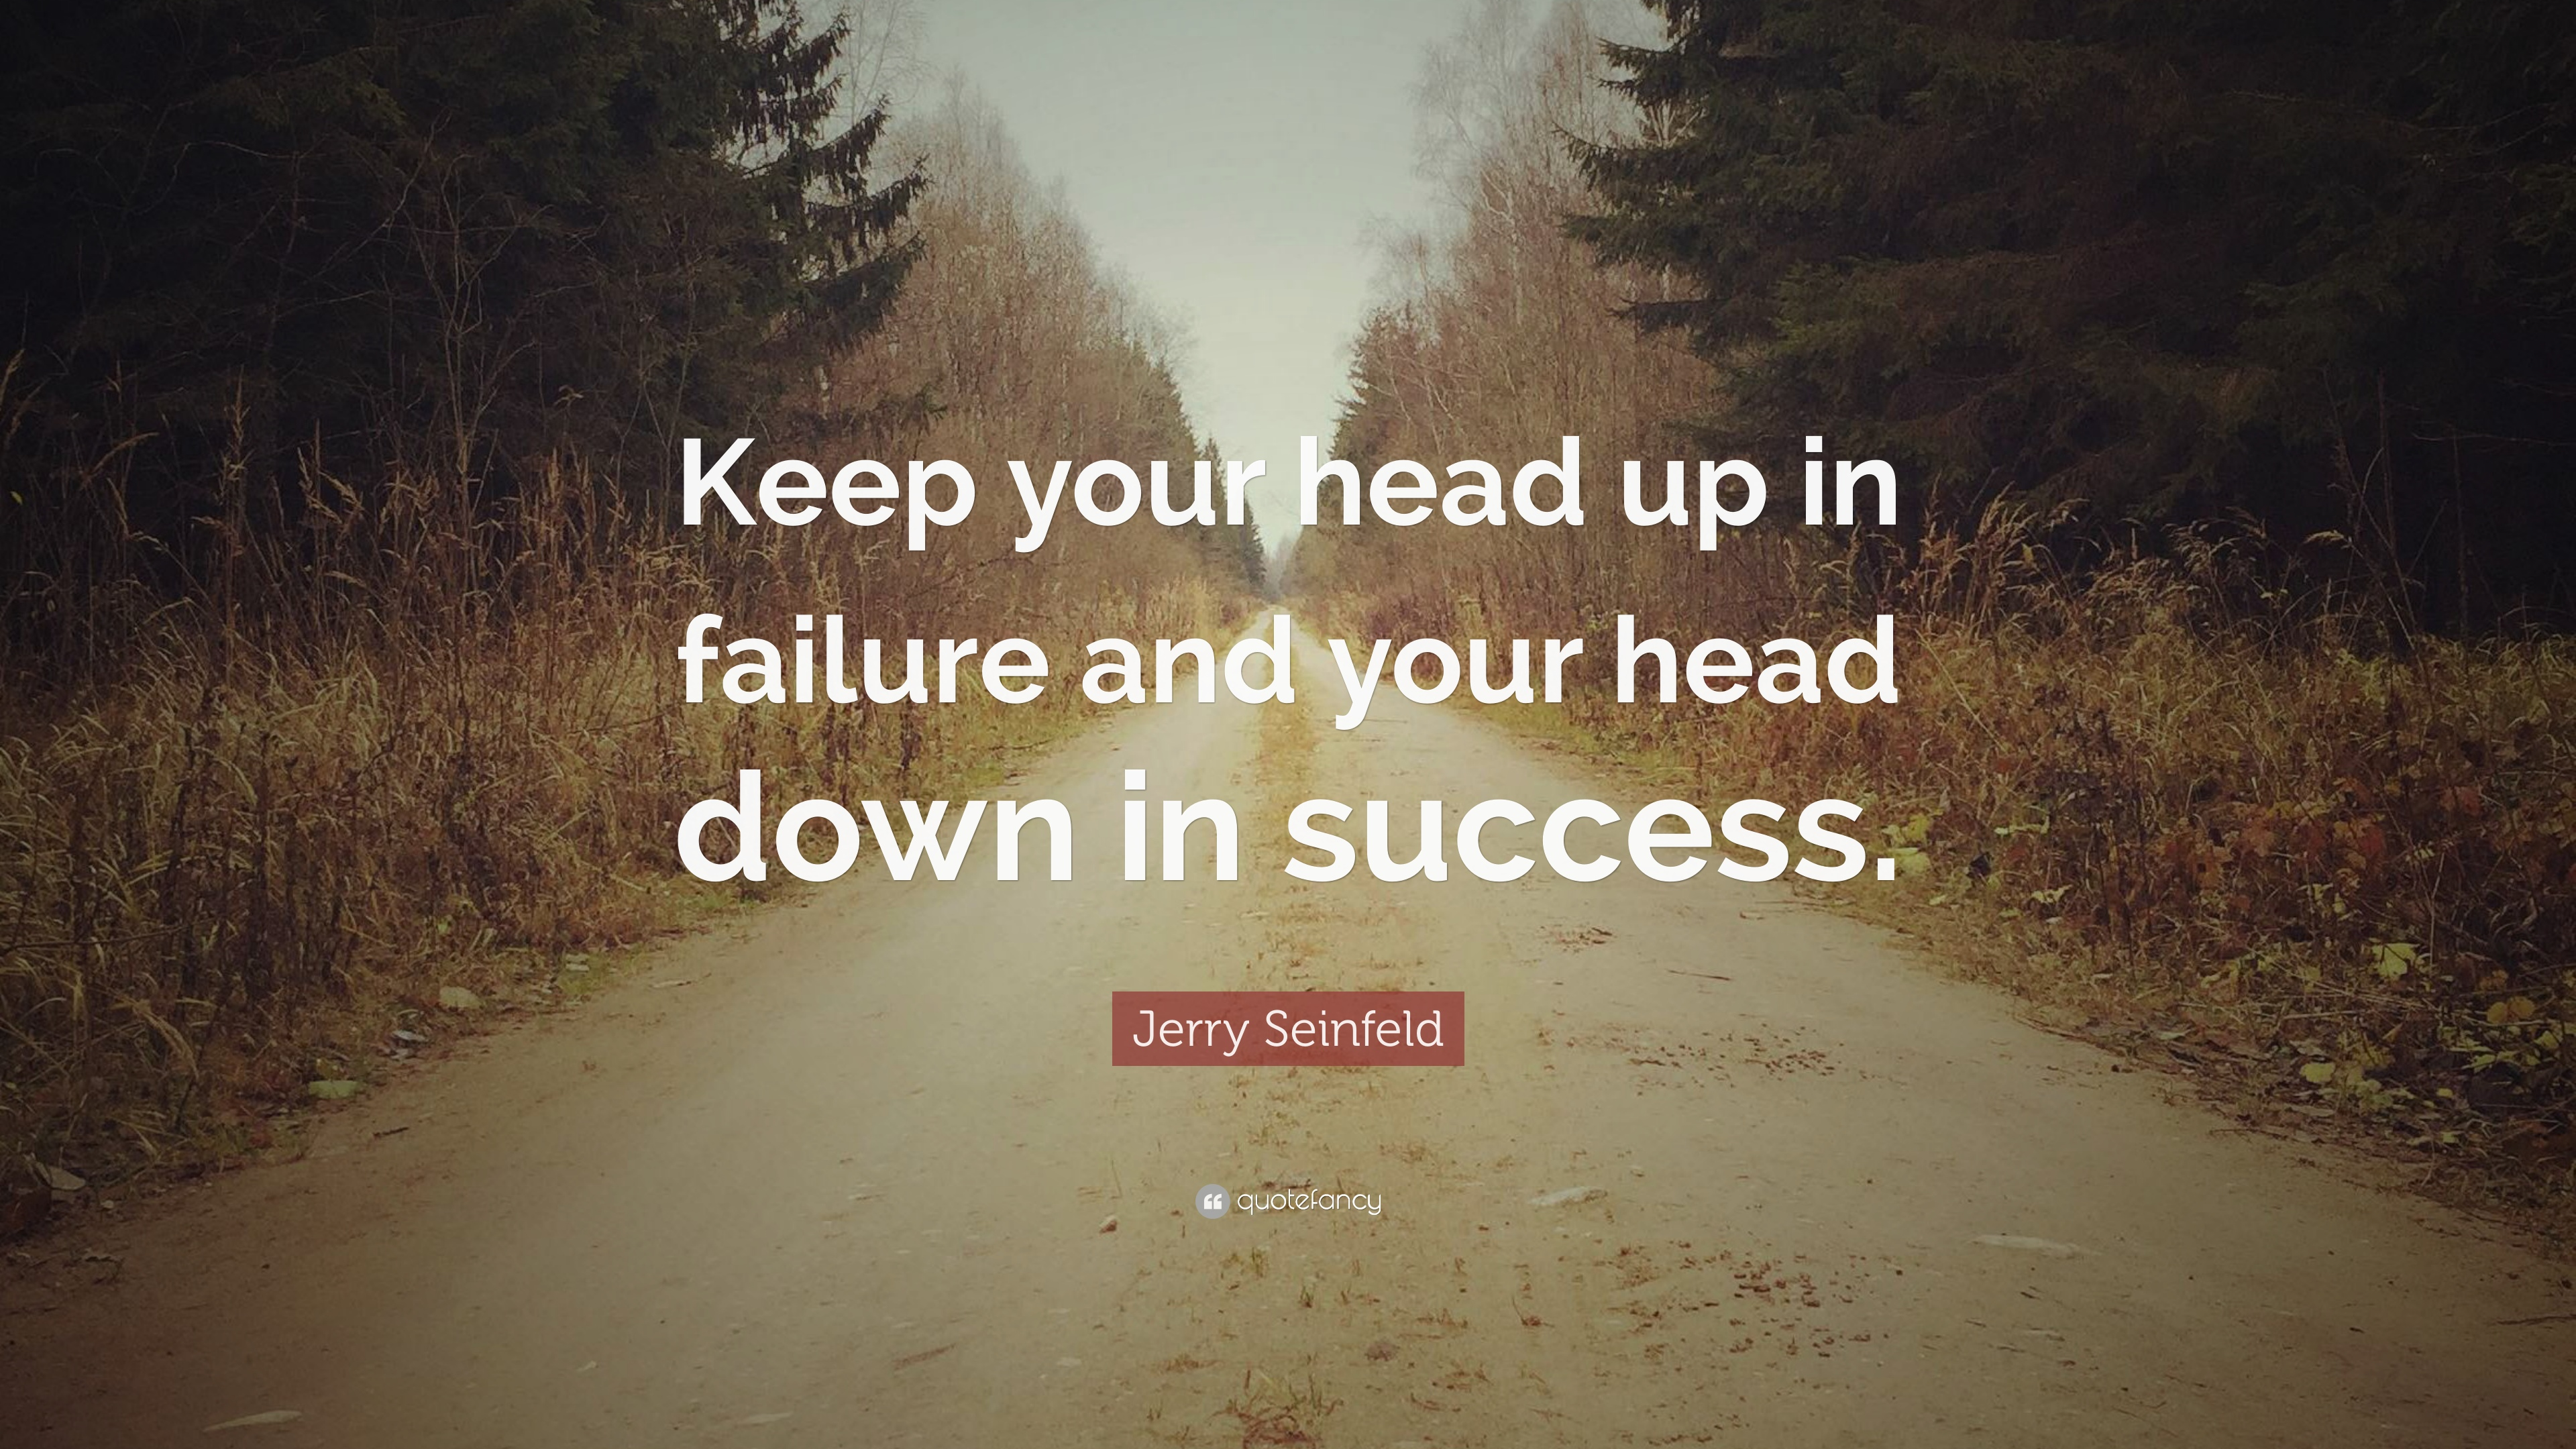 Jerry Seinfeld Quote Keep Your Head Up In Failure And Your Head